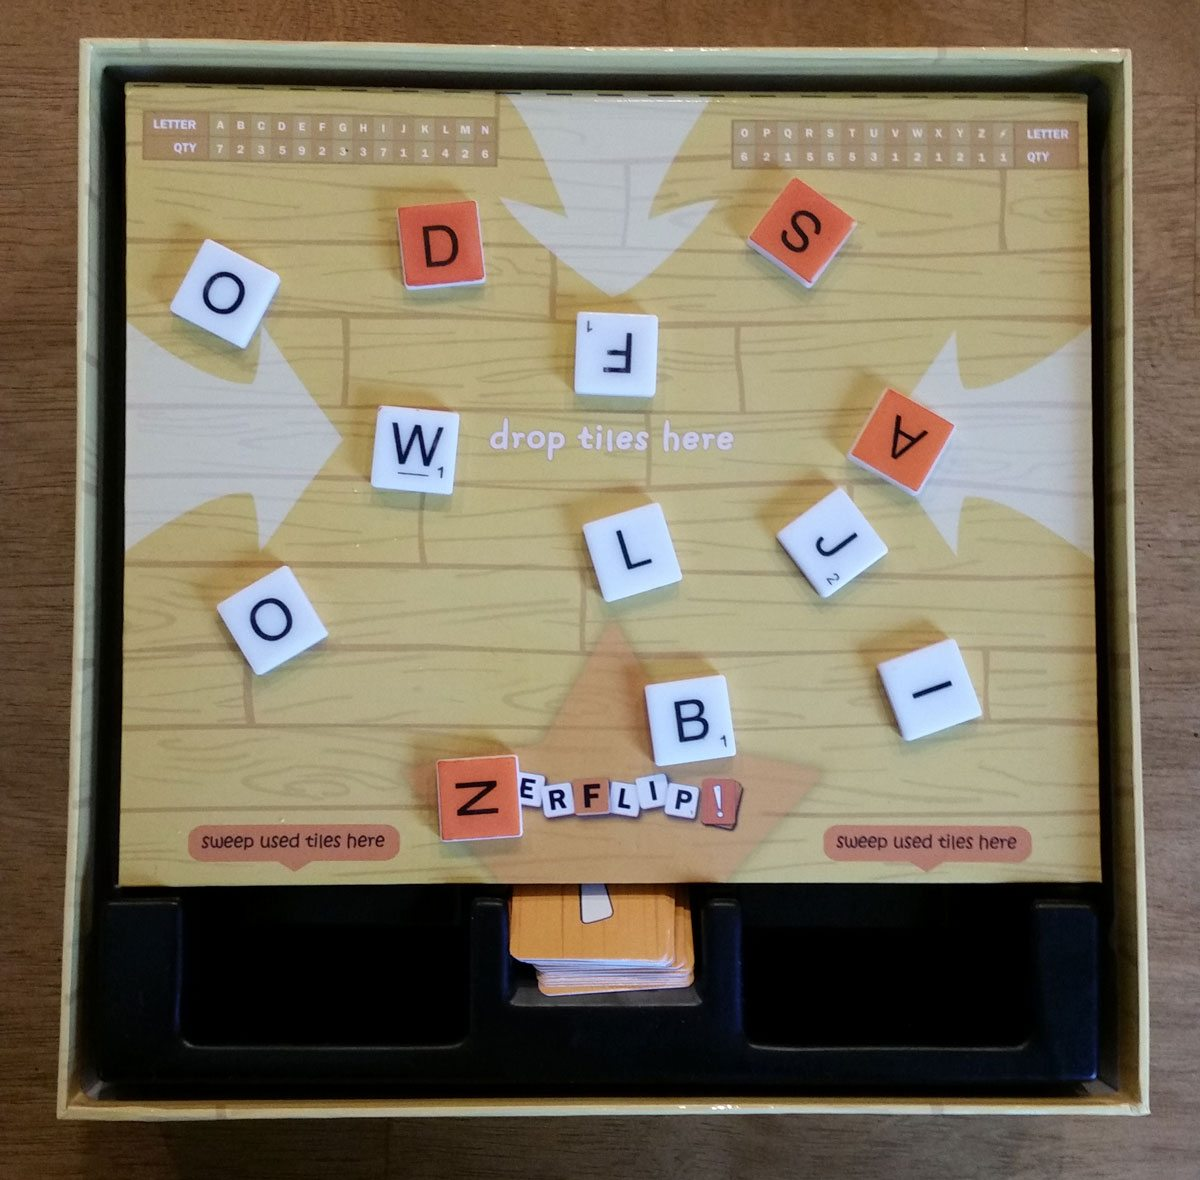 After scoring the word 'sand', orange tiles now worth fewer points. Image by Rob Huddleston.